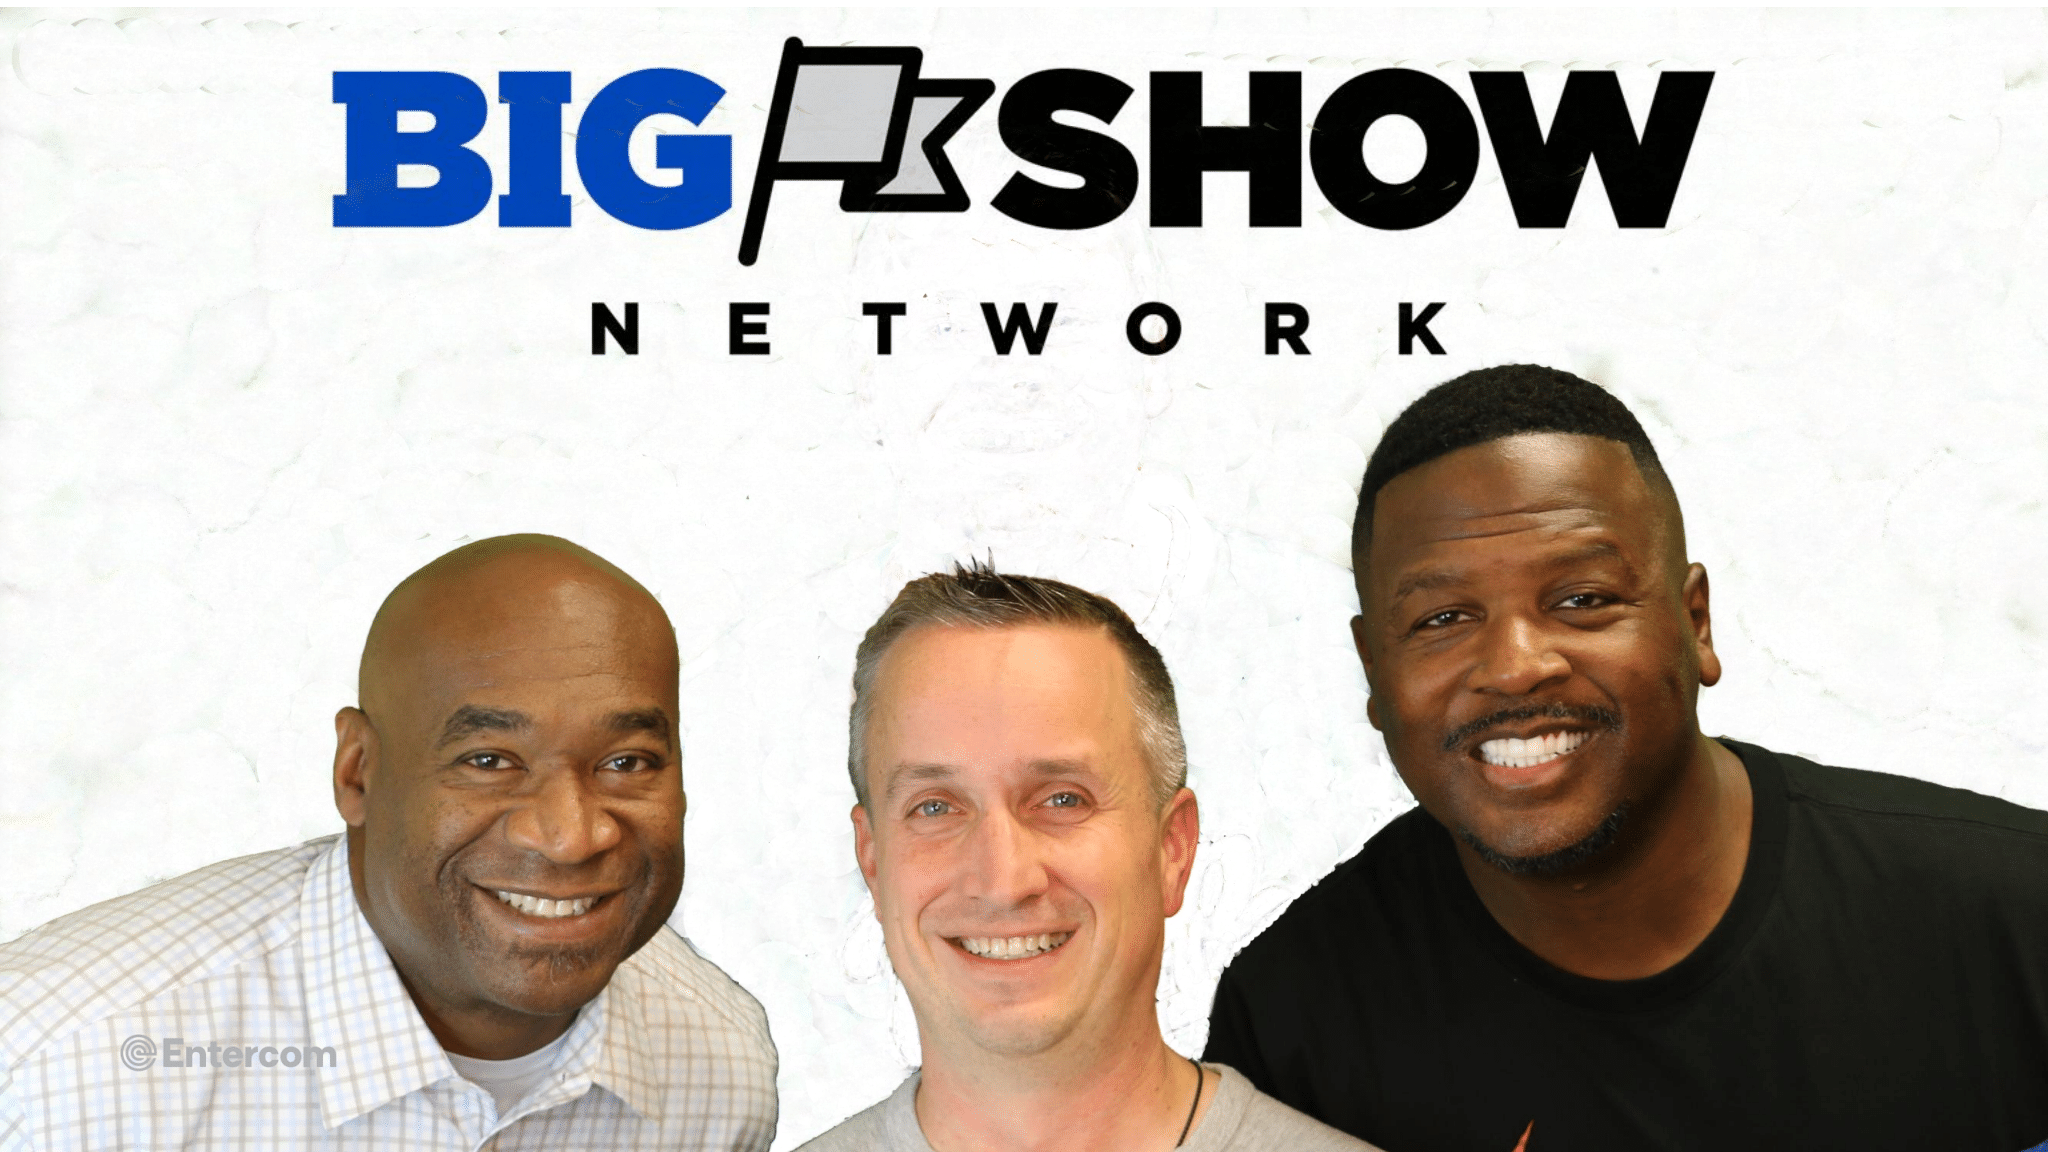 Catch The Big Show on The Fan!